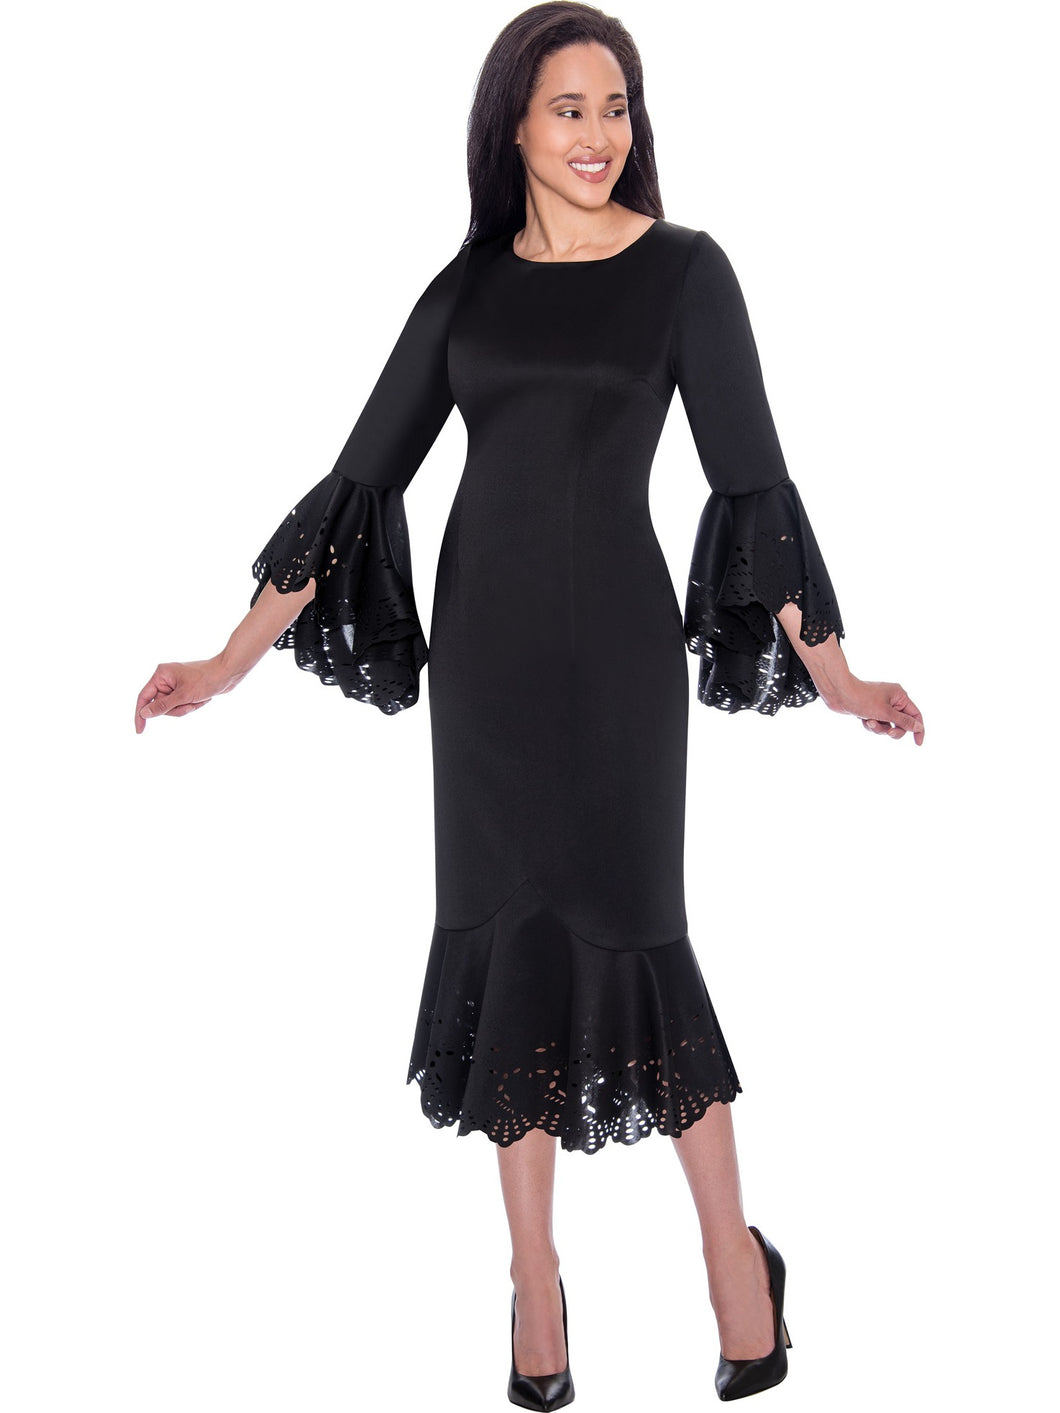 Black Church or Special Occasion Dress, Dresses by Nubiano